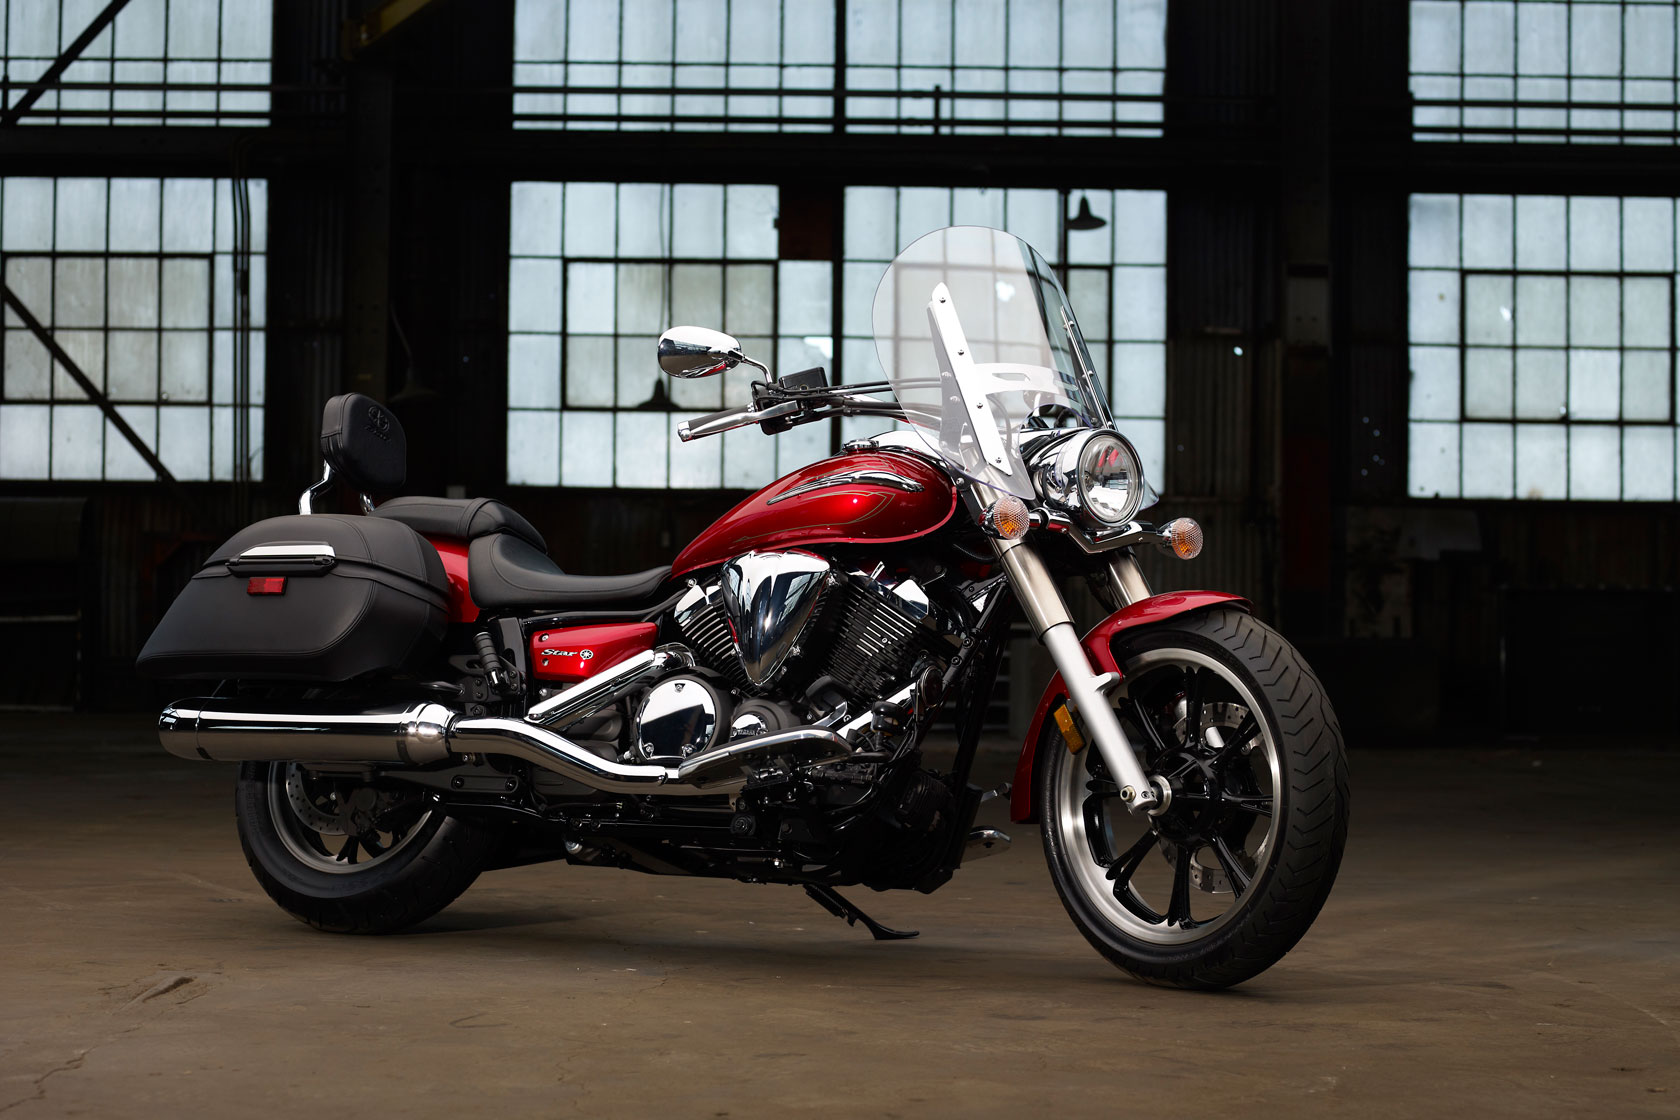 Yamaha V Star 950 Tourer 2012 #7